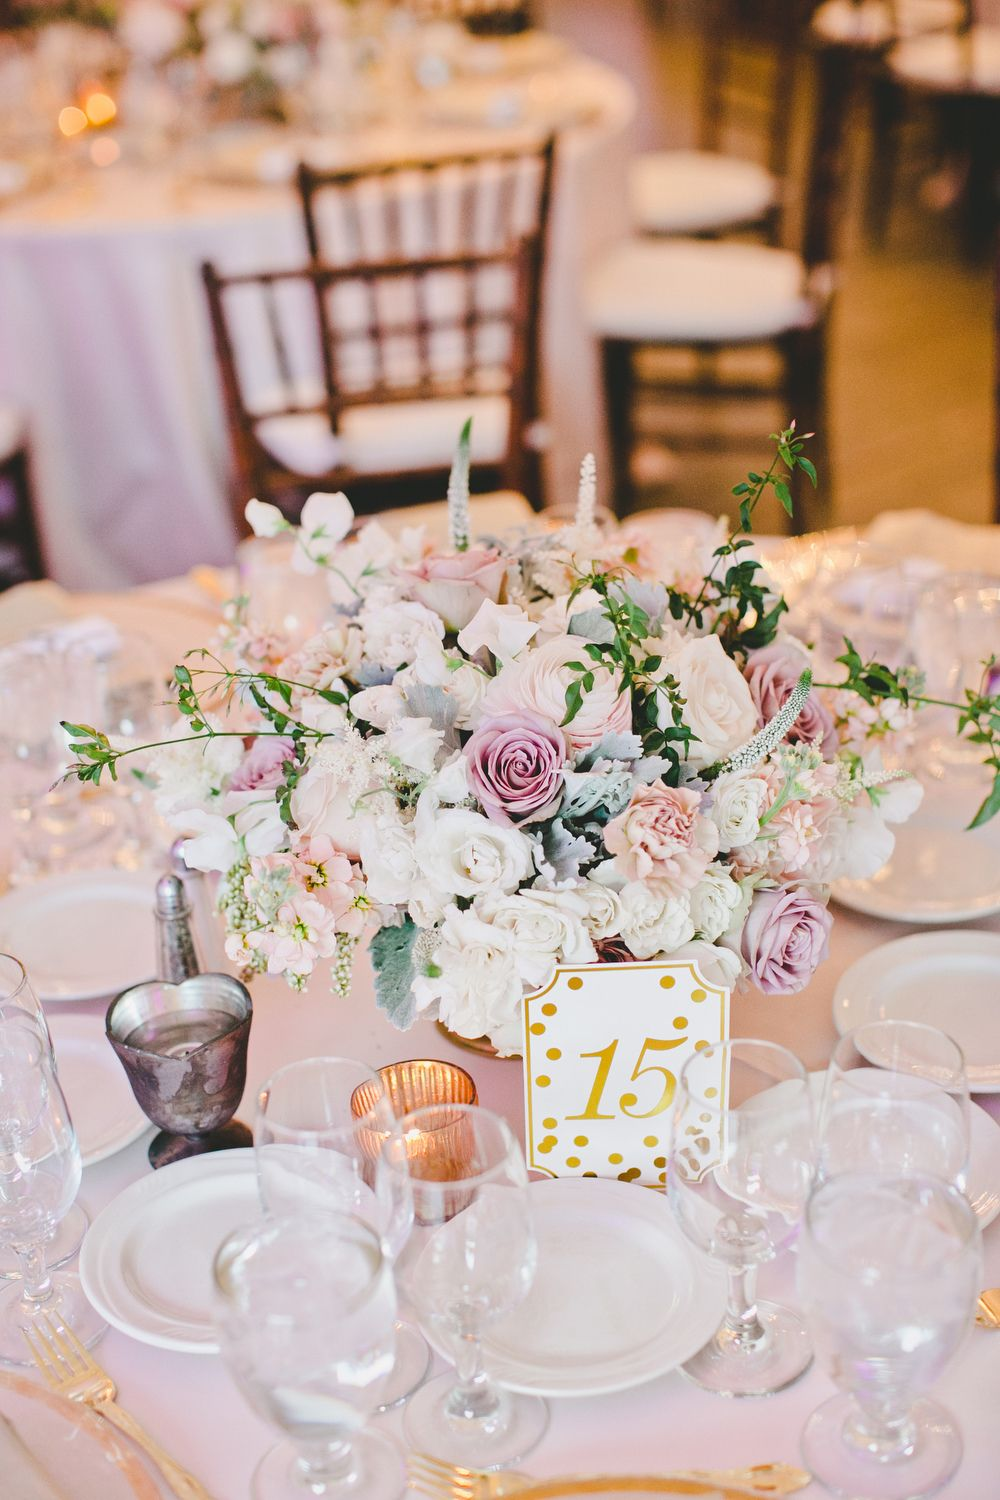 Sweet and elegant wedding table ideas | Inspiring post by Bridestory.com, everyone should read about Secret Garden-Inspired Wedding with Glamorous Sequins on http://www.bridestory.com/blog/secret-garden-inspired-wedding-with-glamorous-sequins